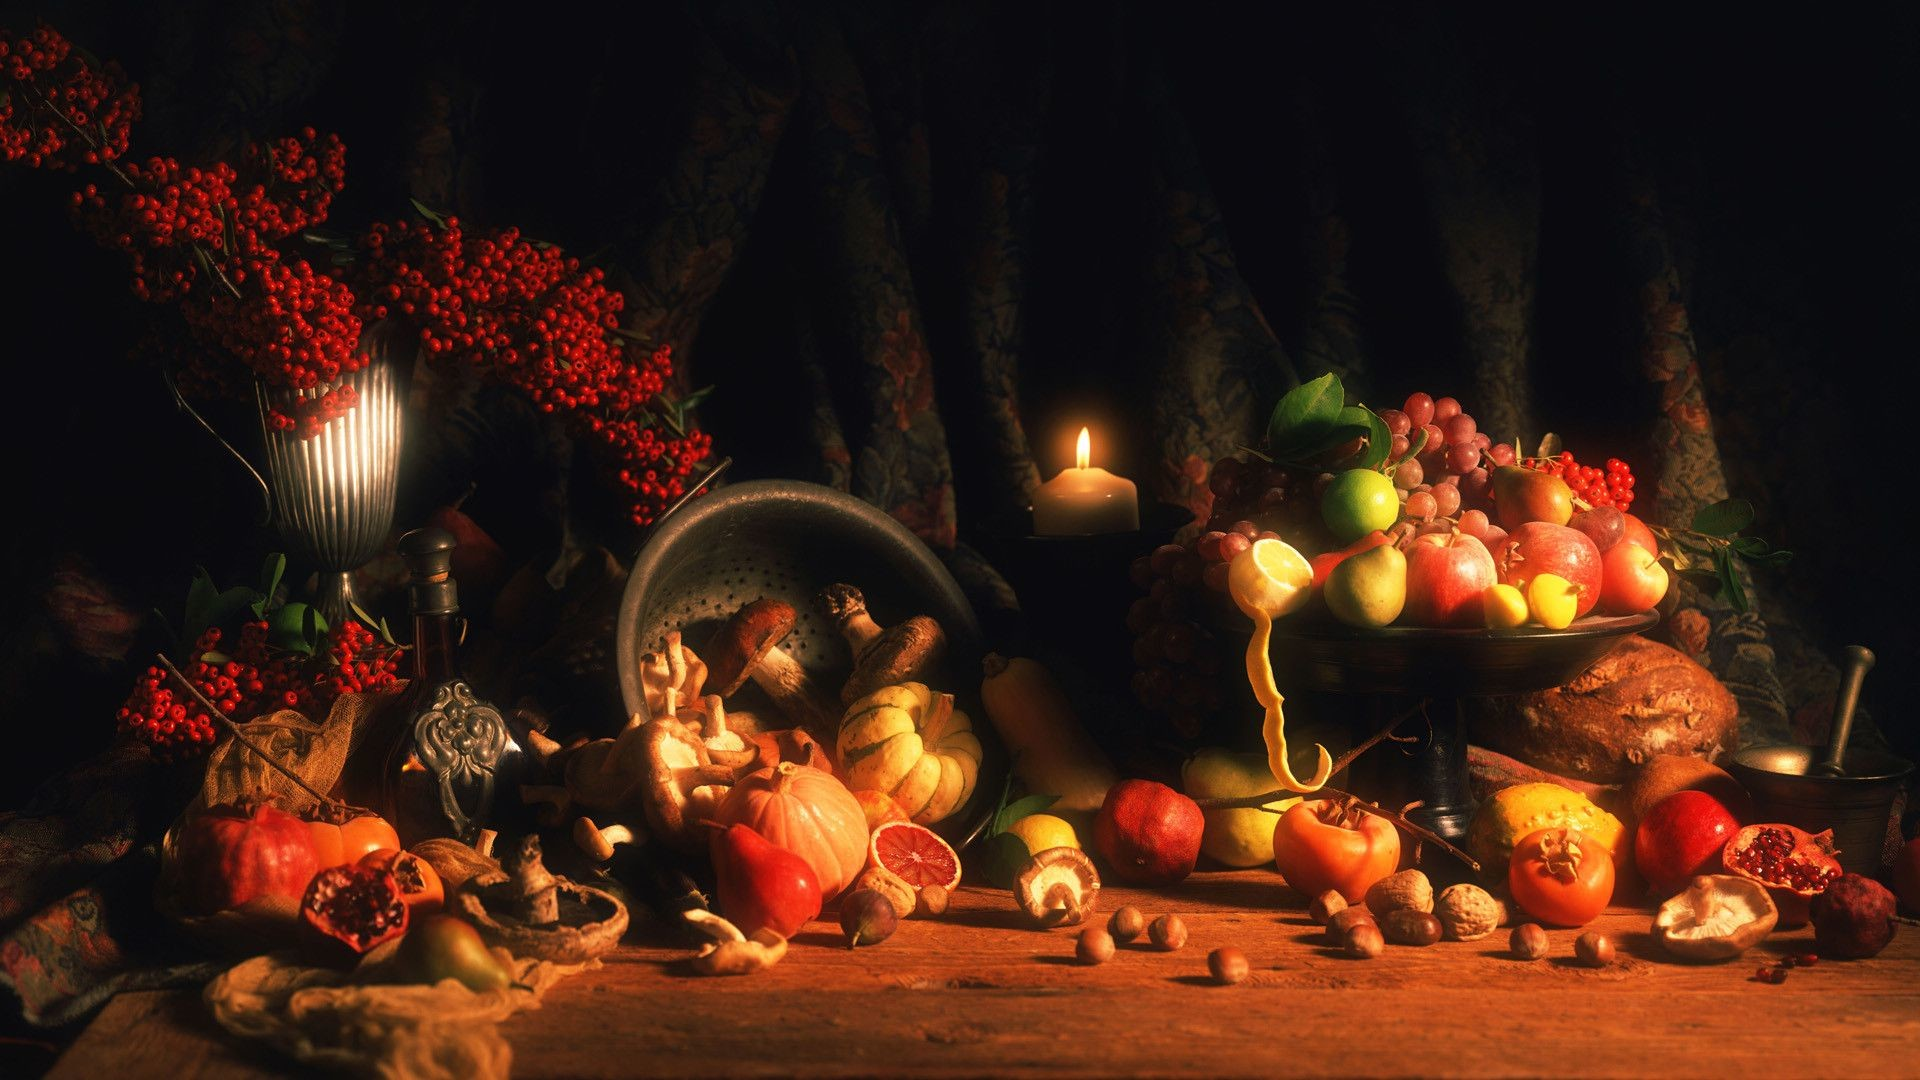 Holiday pumpkin and fruit thanksgiving wallpapers and backgrounds  thanksgiving wallpaper desktop free.